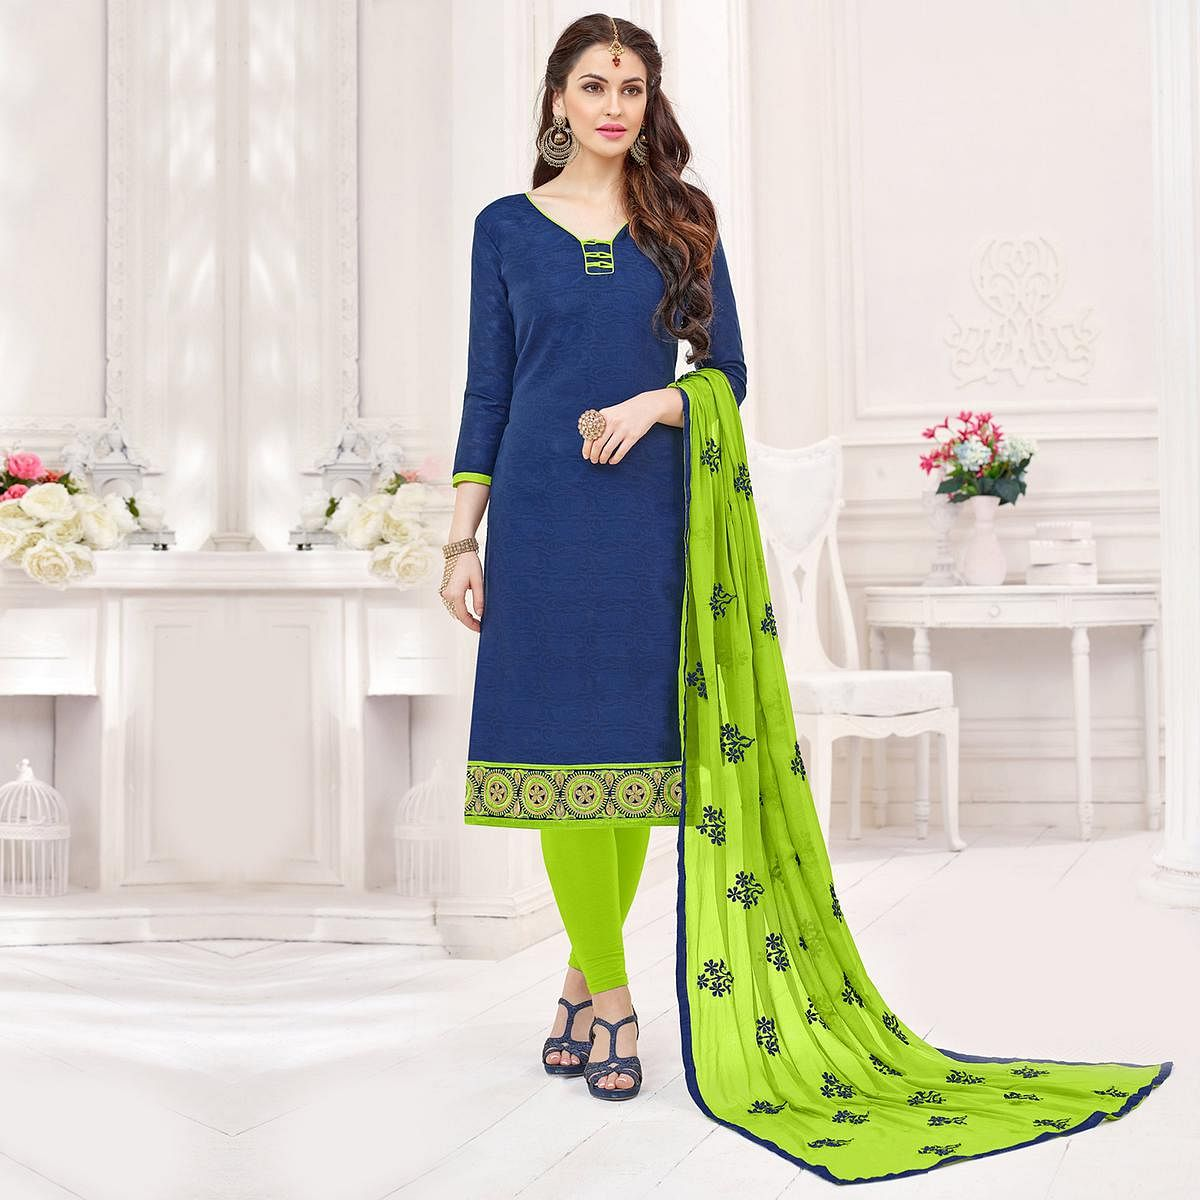 Navy-Green Partywear Embroidered Bombay Jacquard Salwar Suit